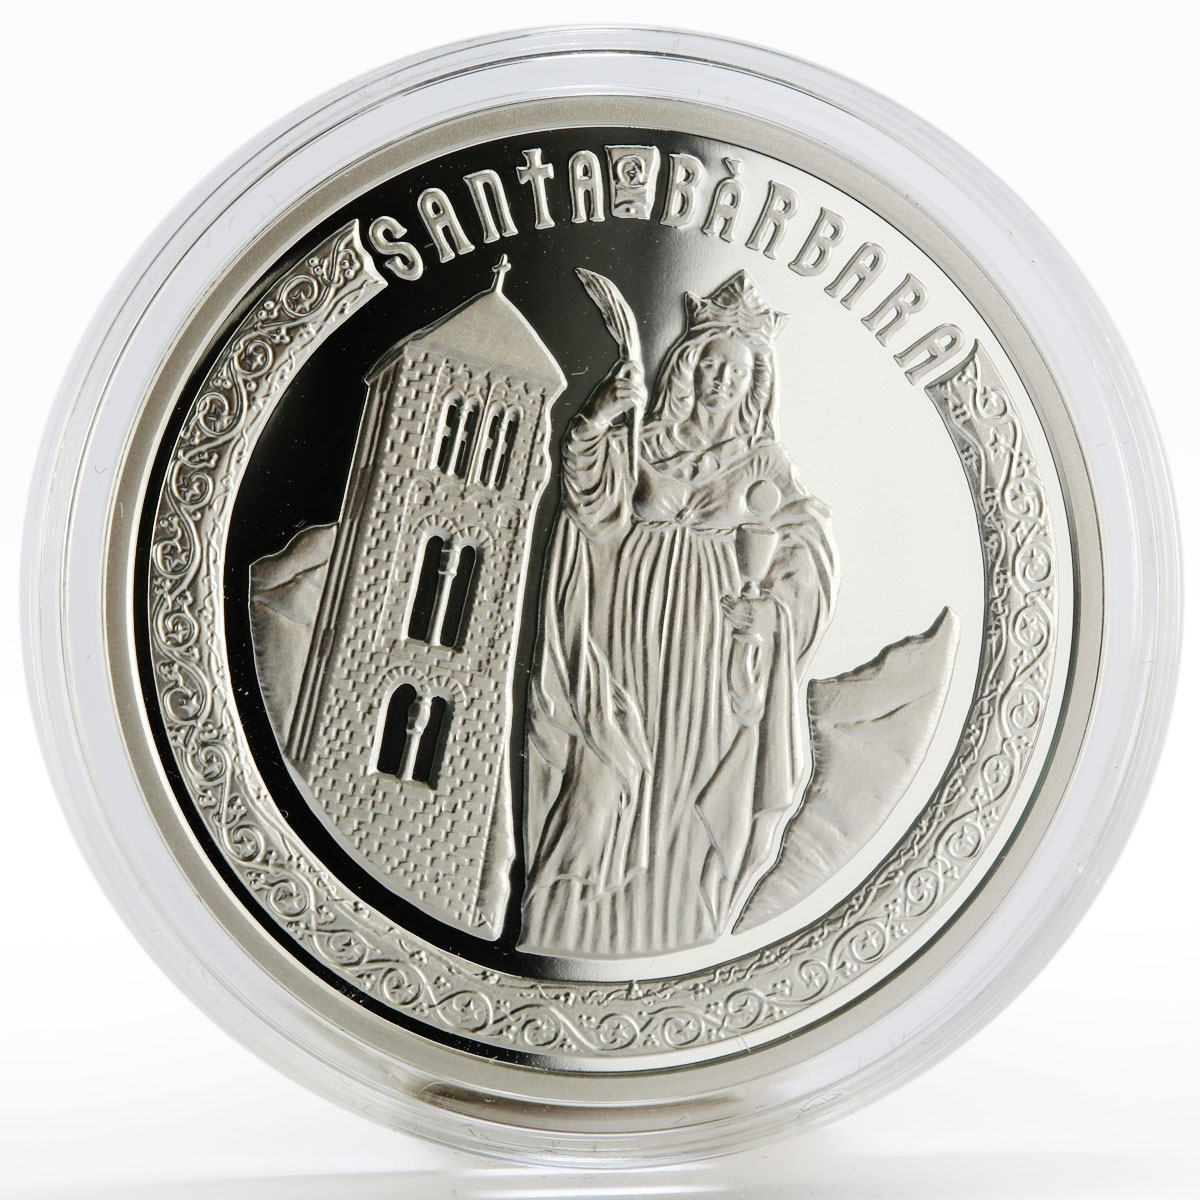 Andorra 10 dinars Holy Helpers series St. Barbara silver proof coin 2010